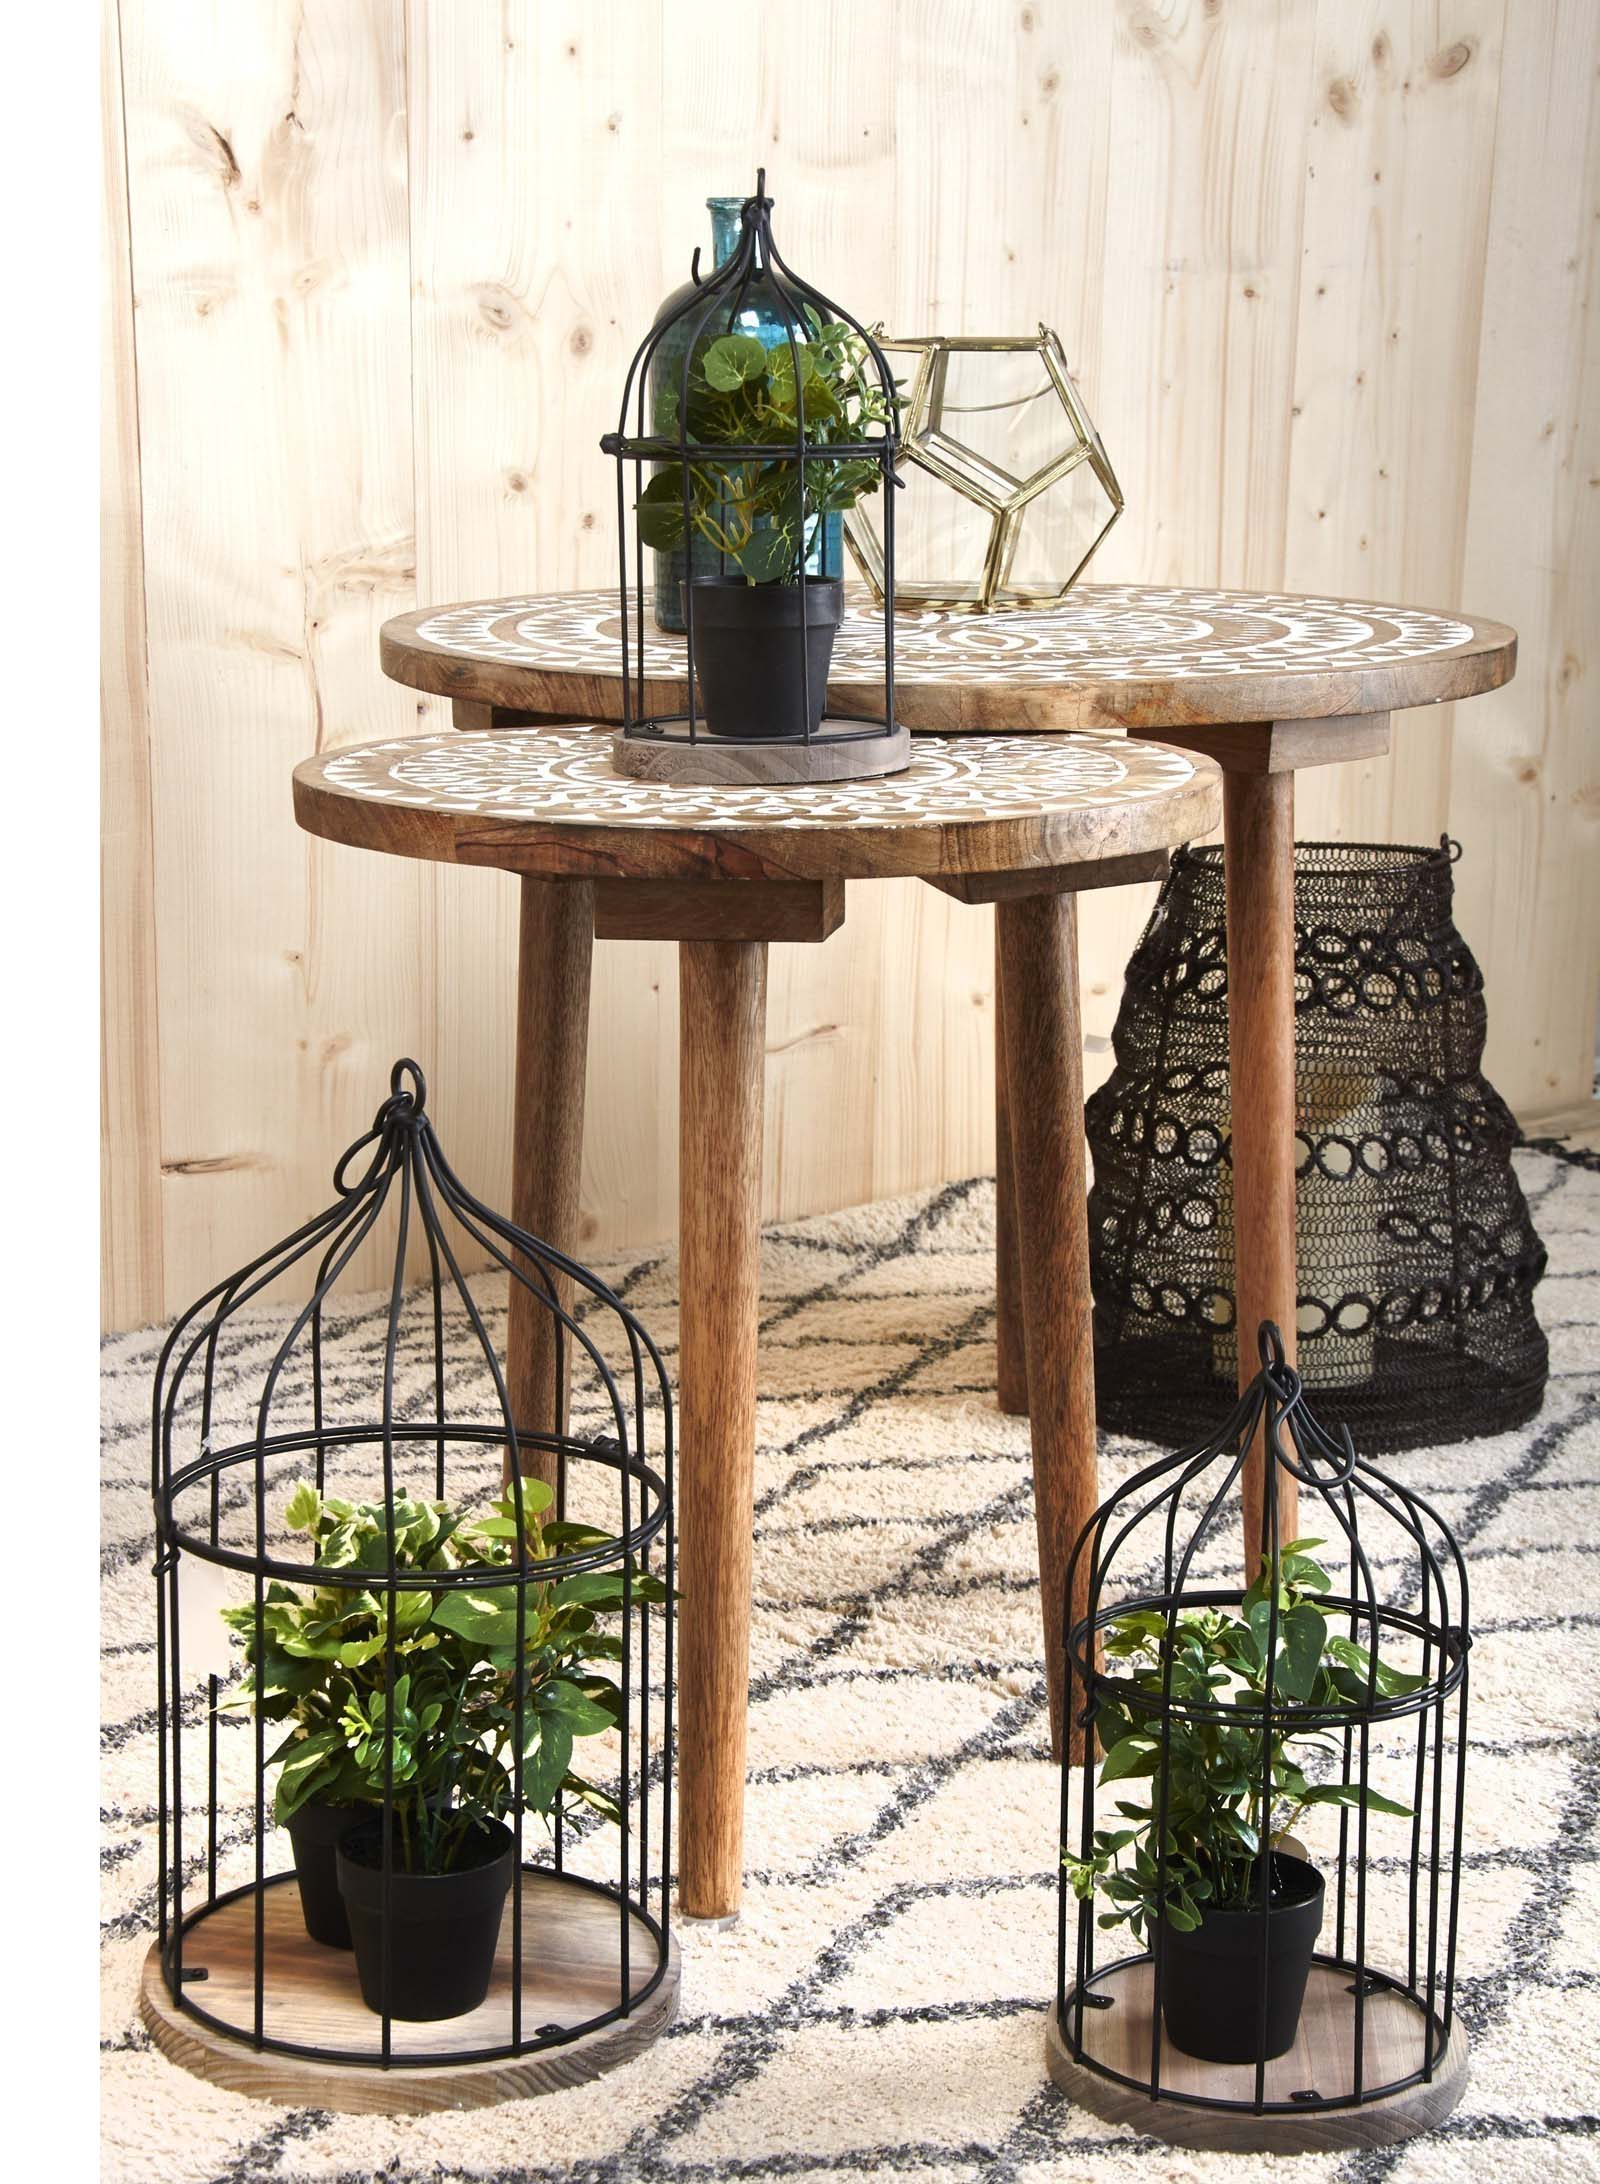 decoration-interieure-cage-decorative-metal